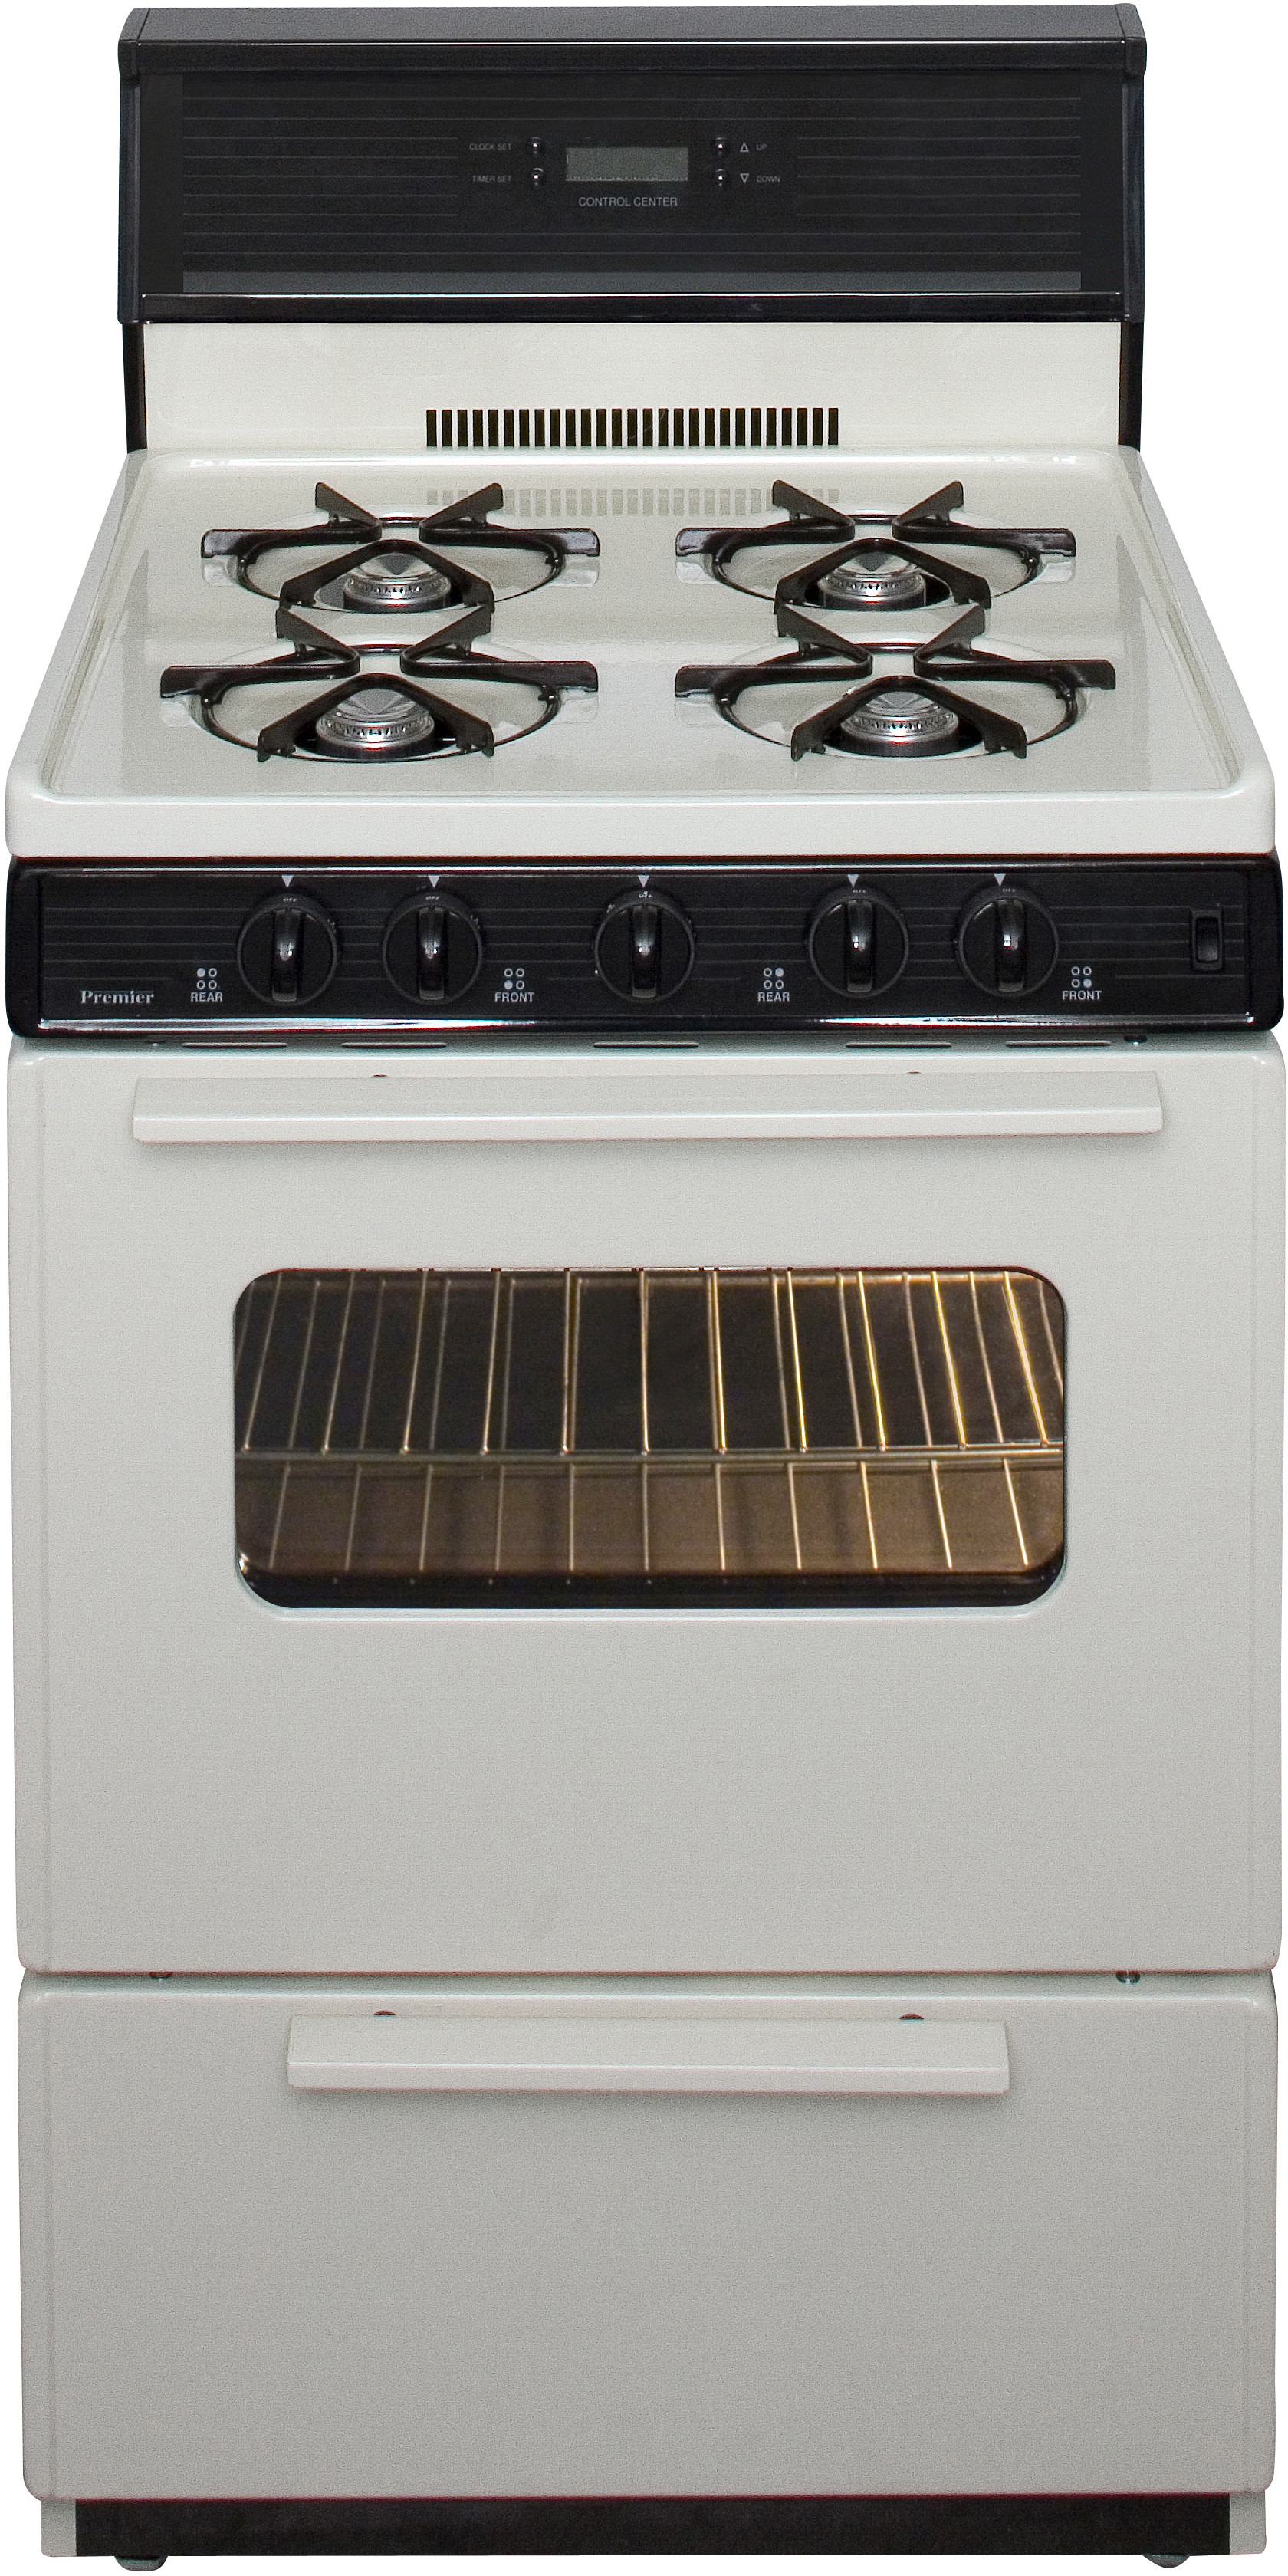 stove 24 inch gas. stove 24 inch gas m